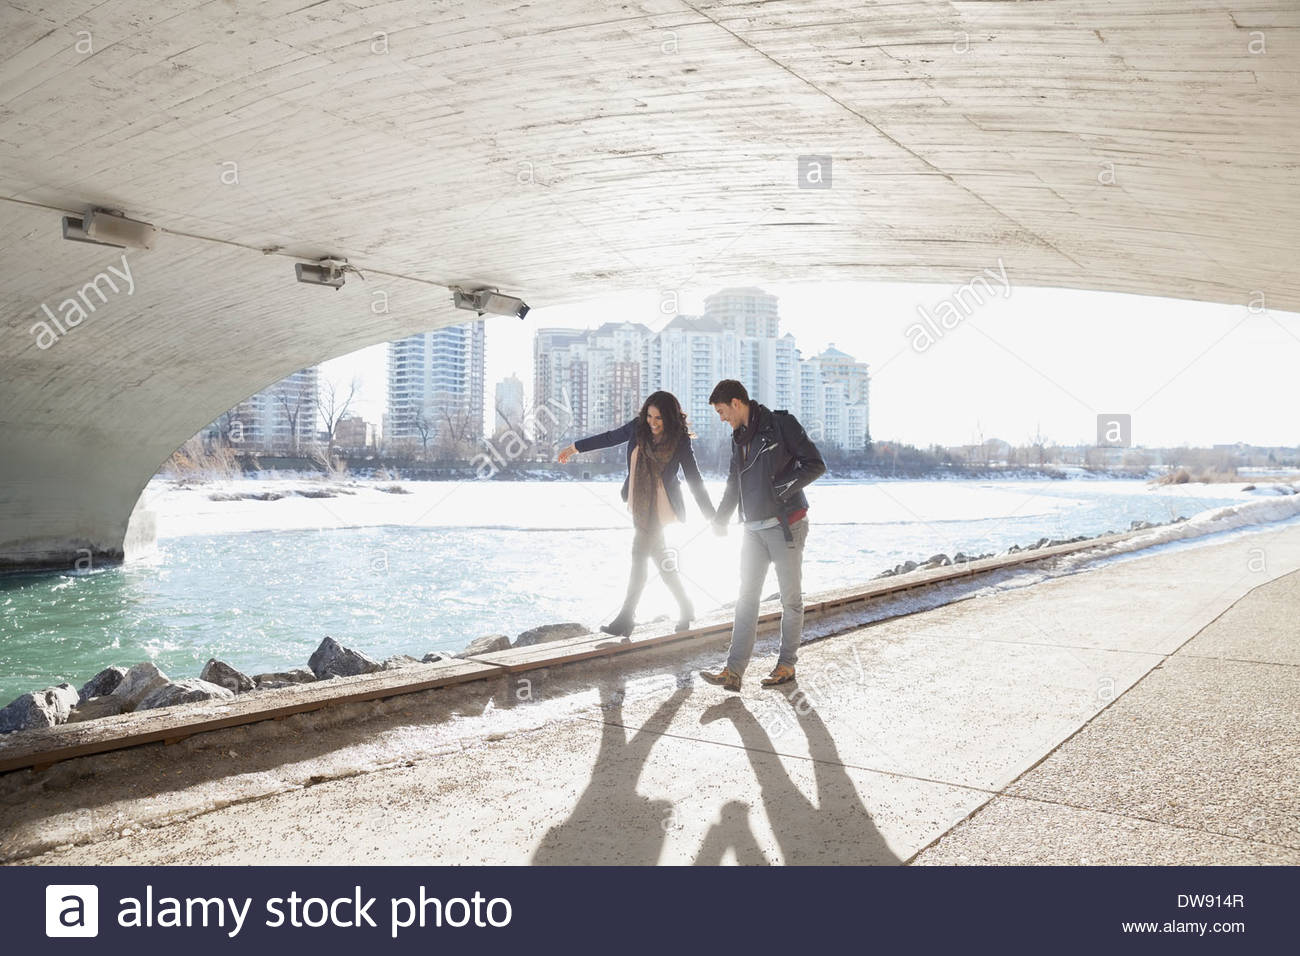 Man assisting woman walking on footpath under city bridge - Stock Image